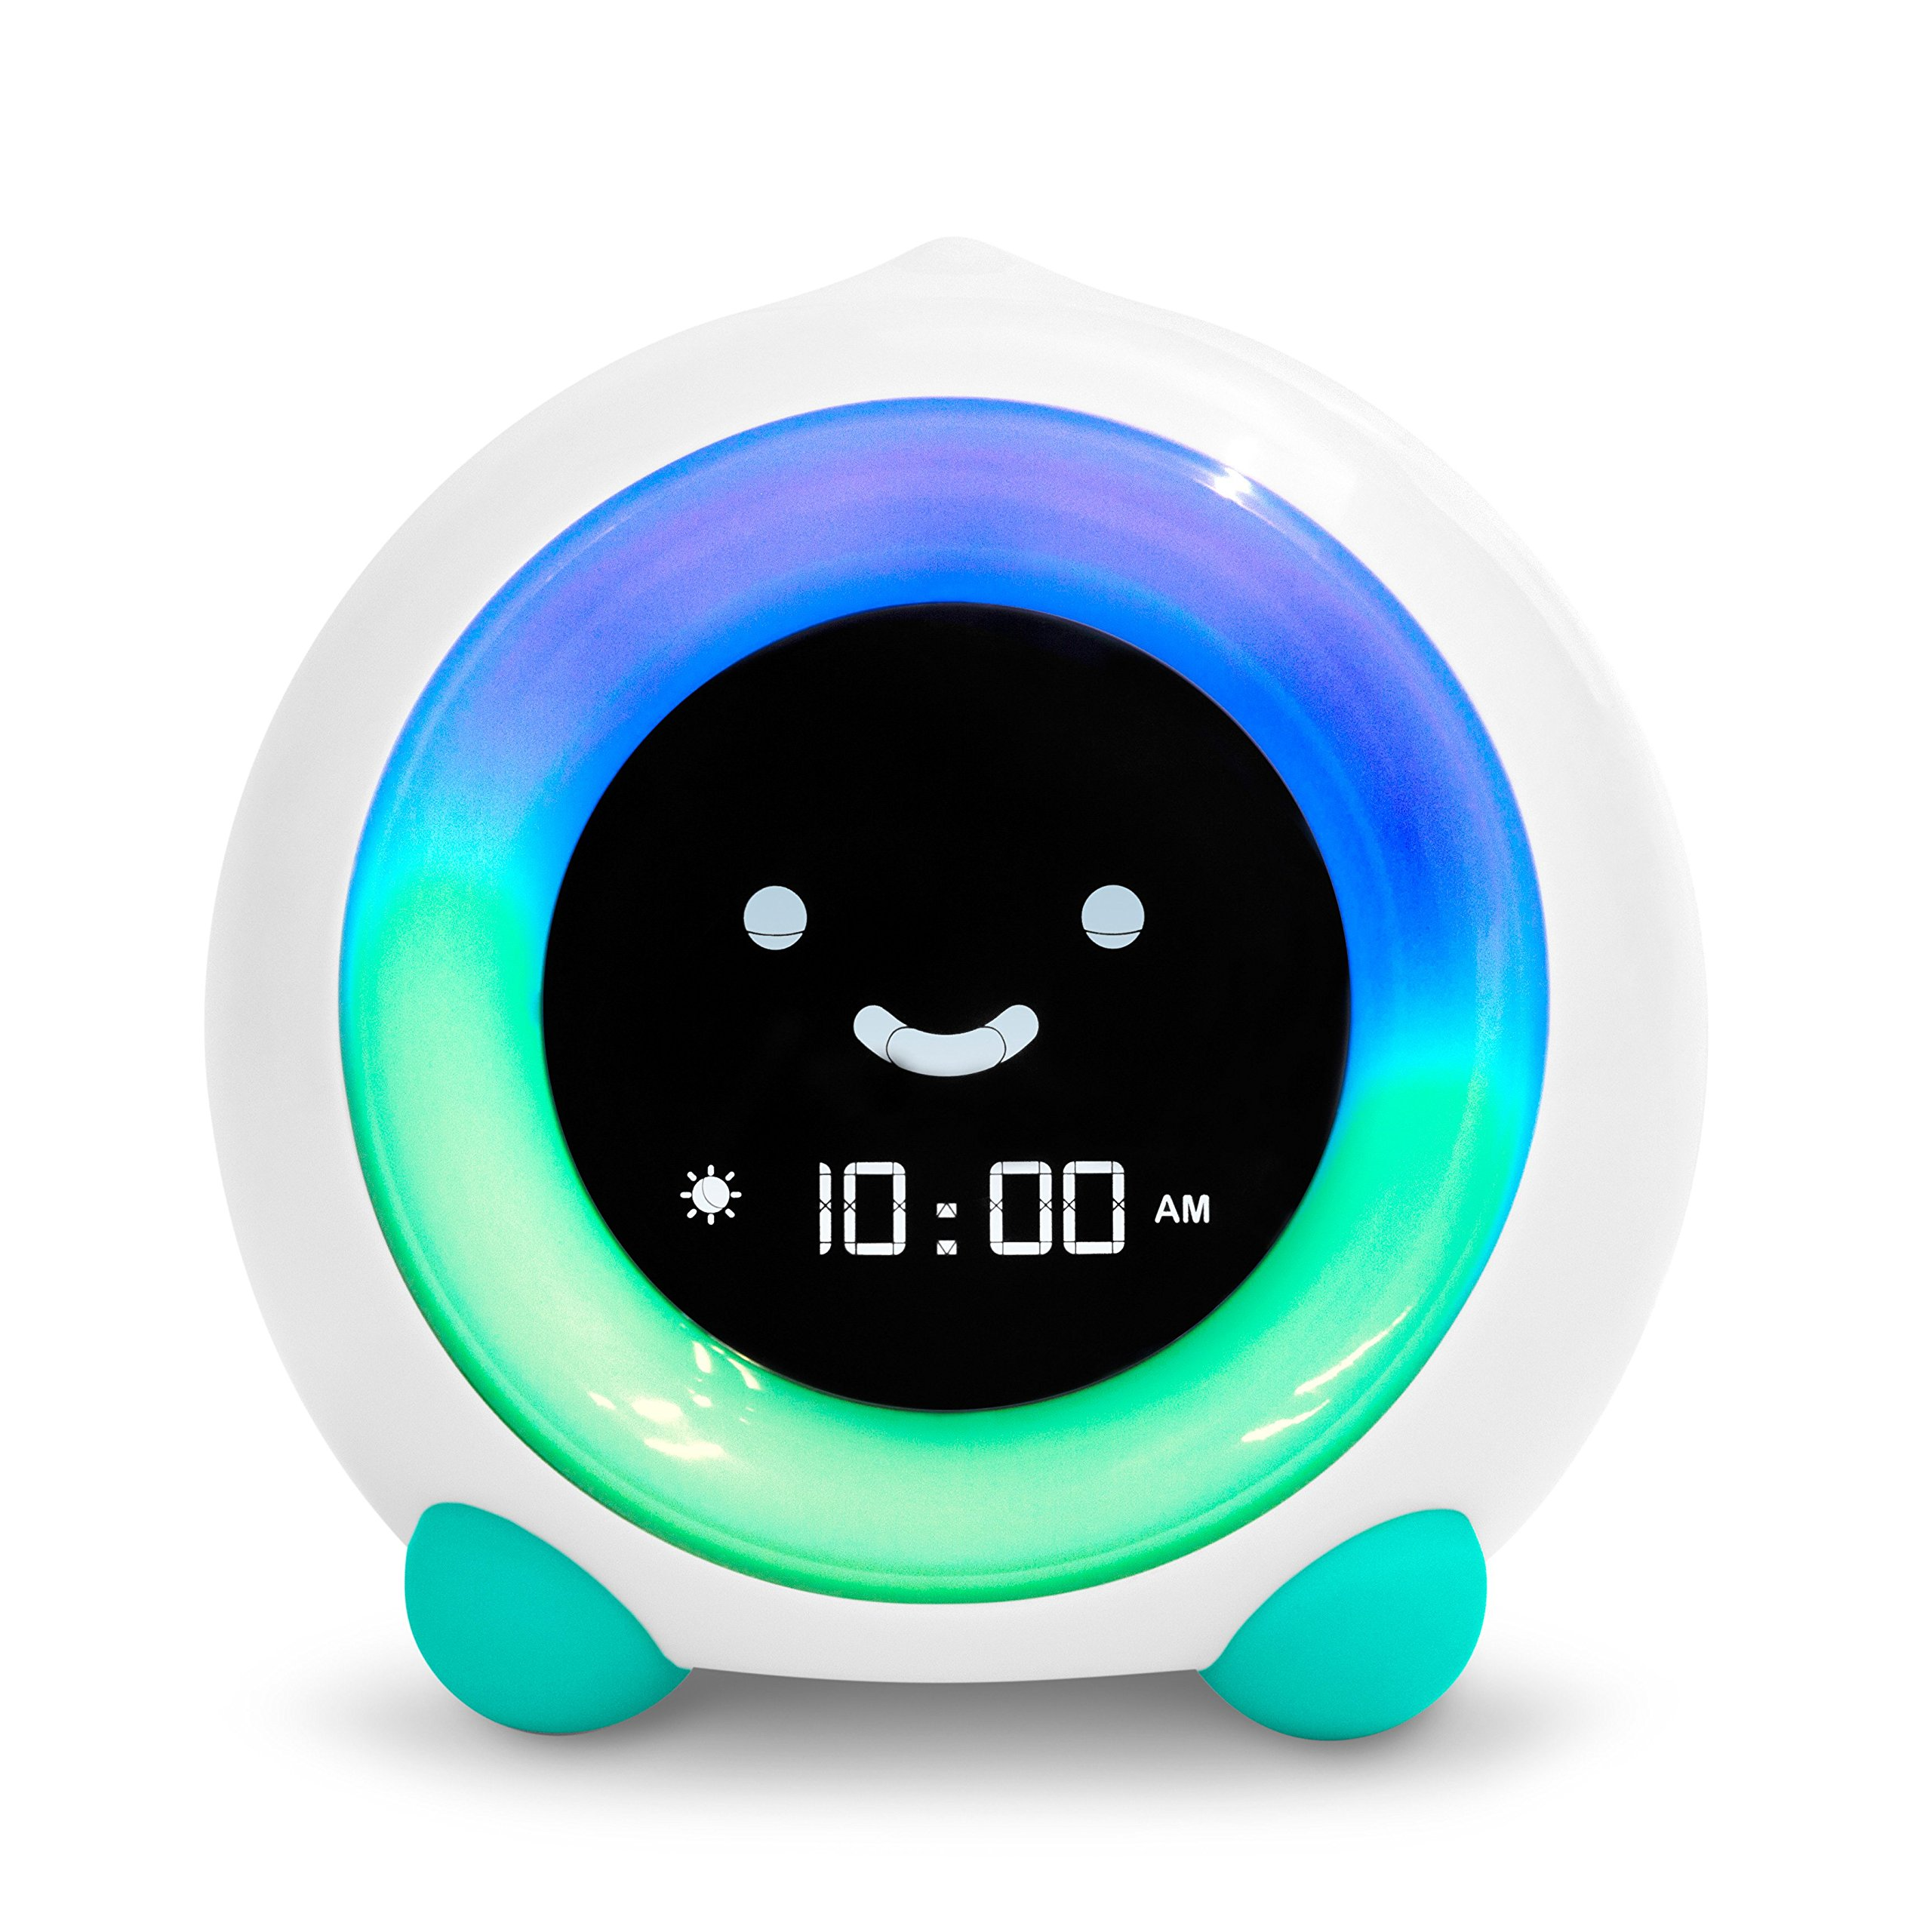 MELLA Ready to Rise Children's Sleep Trainer, Alarm Clock, Night Light and Sleep Sounds Machine (Tropical Teal) by LittleHippo